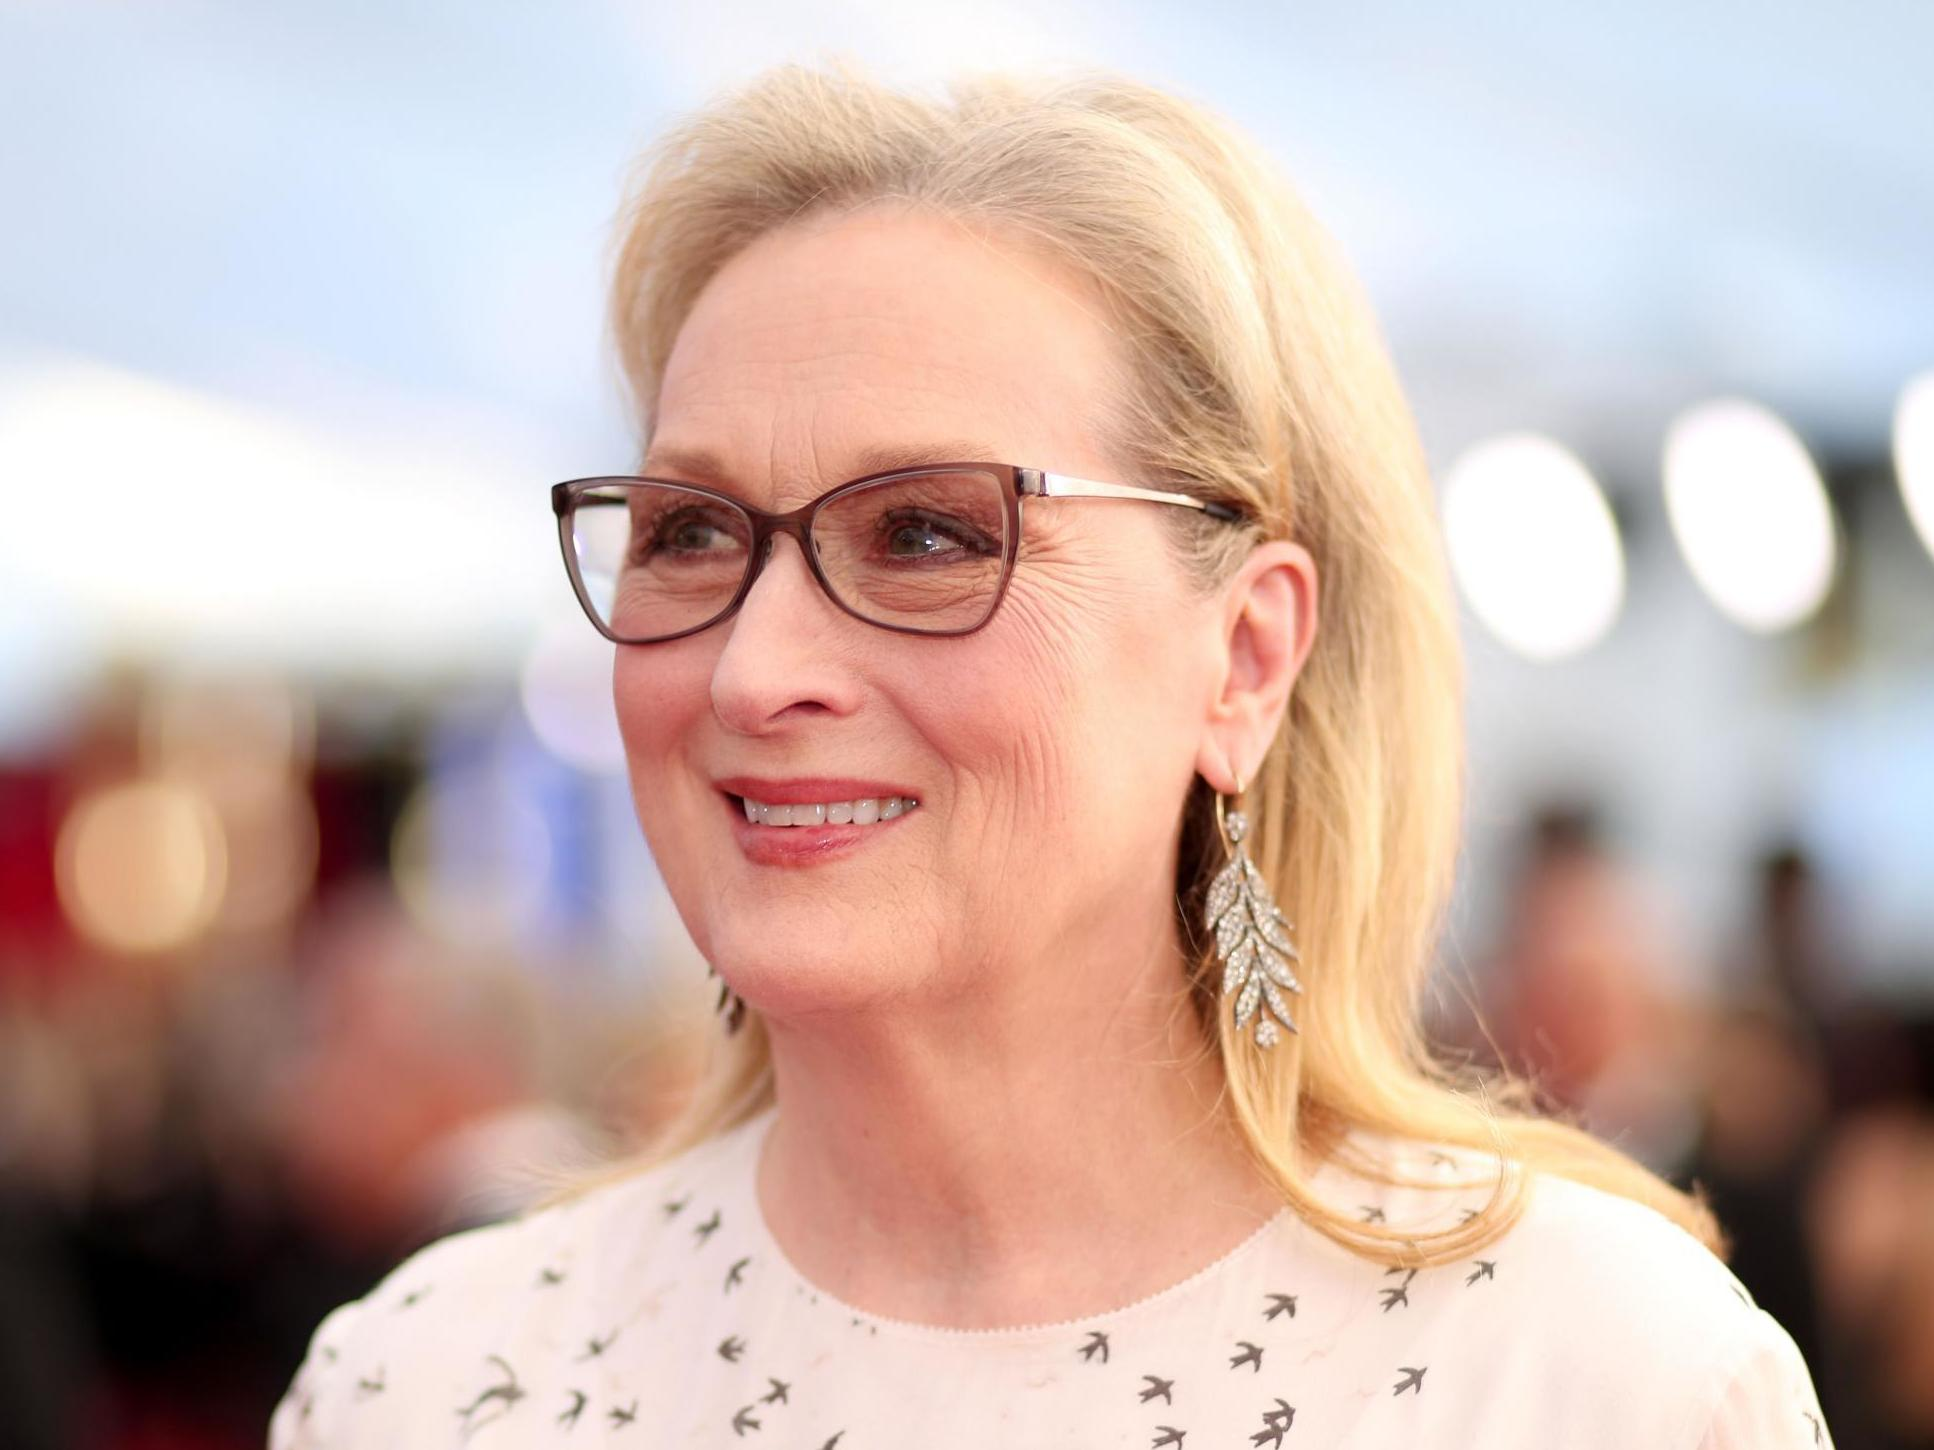 Meryl Streep accused of wearing 'blackface' in Netflix film The Laundromat: 'This isn't going to age well'